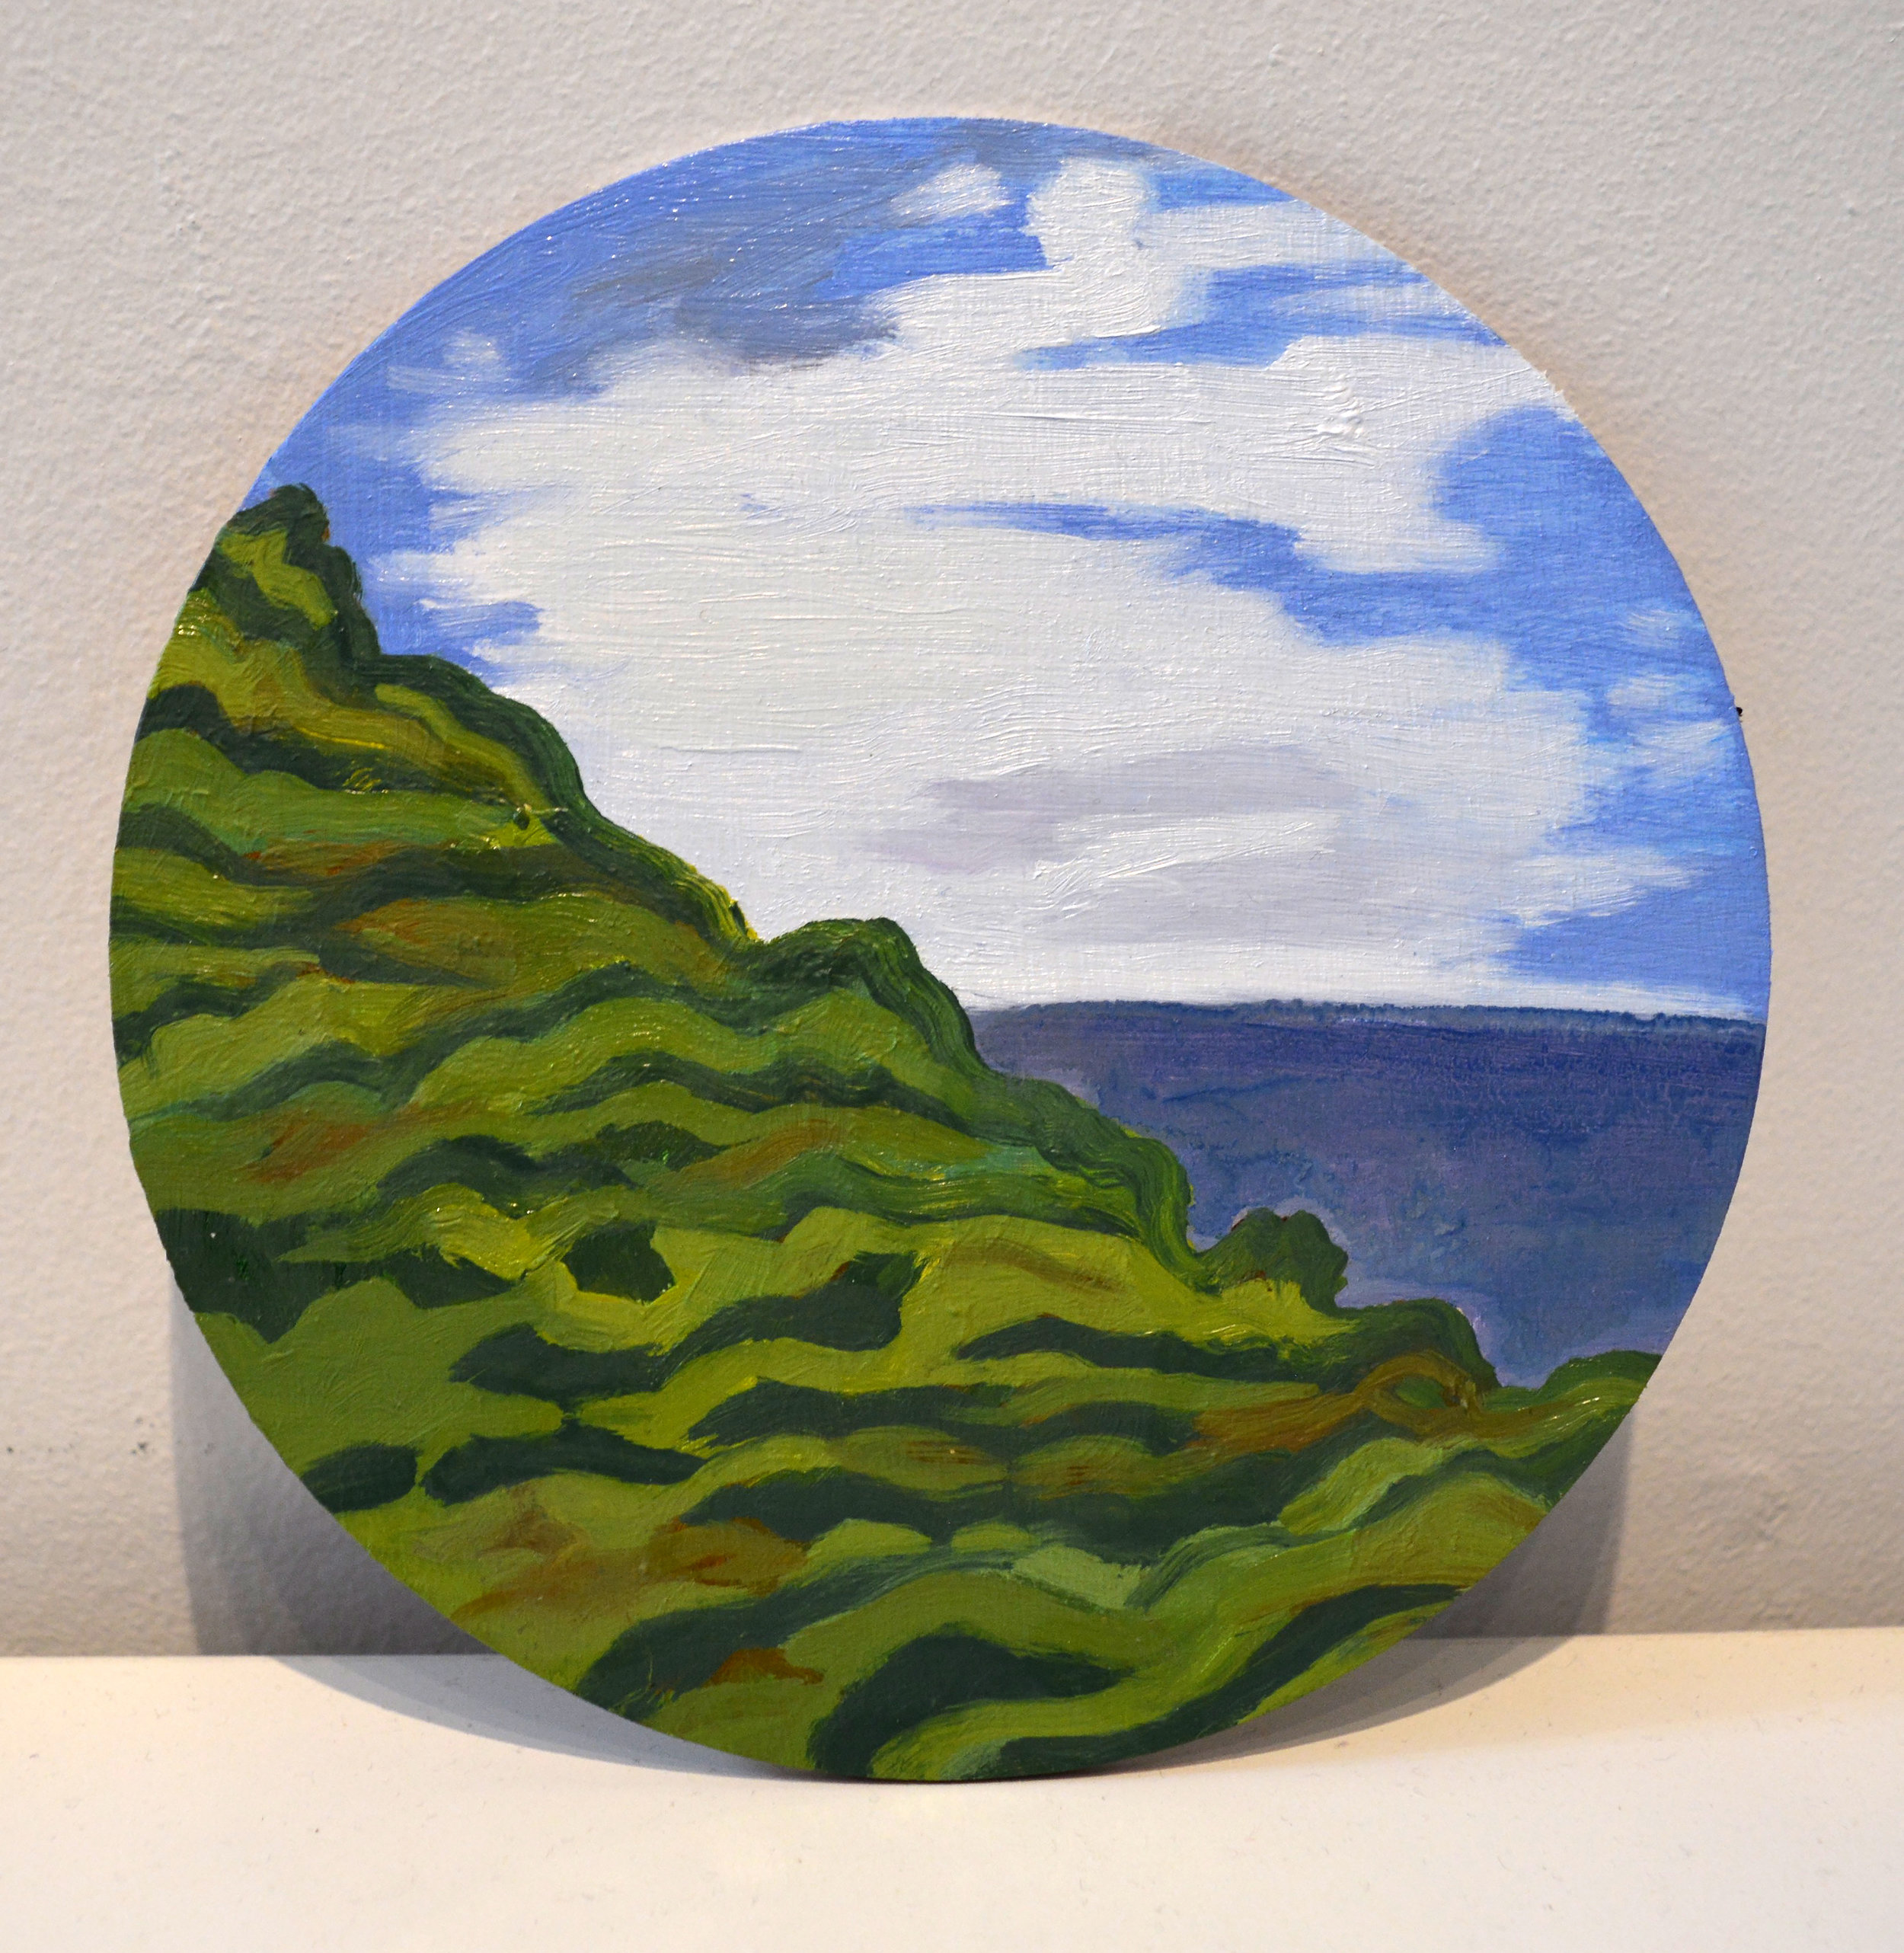 Petite St Vincent  oil and acrylic on wood panel, 6in diameter, 2015